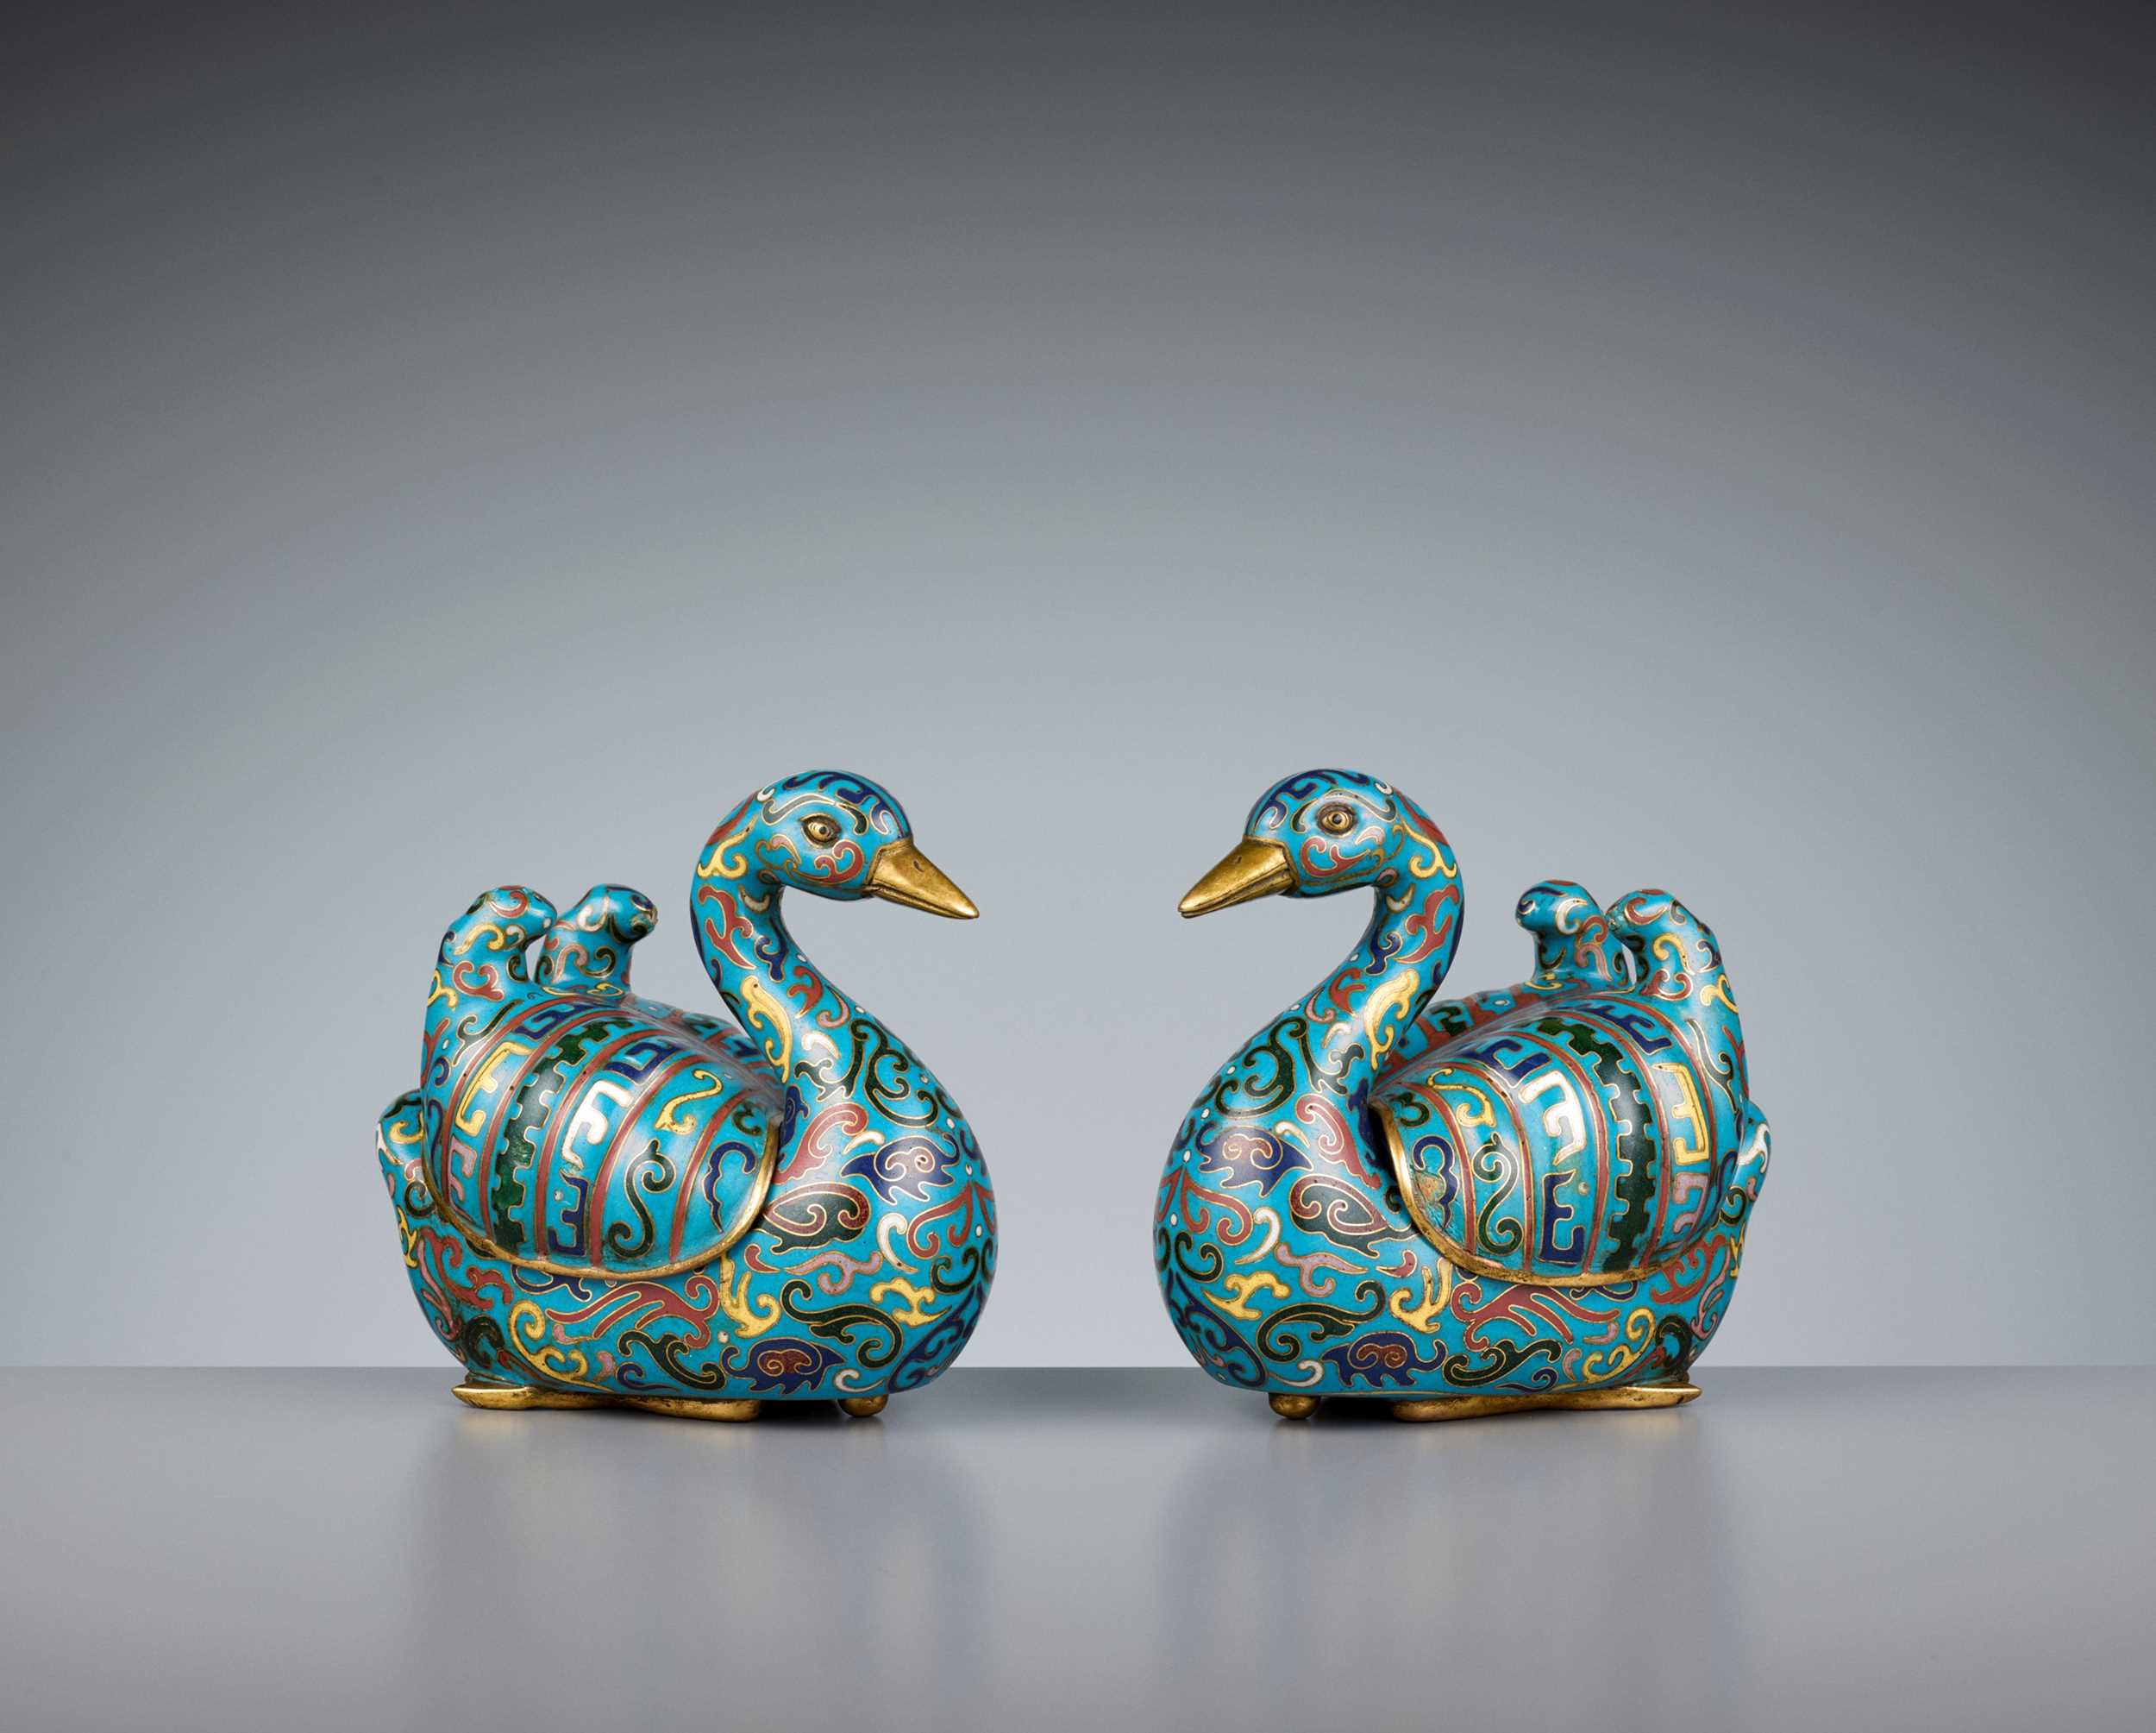 Lot 14 - A PAIR OF GILT-BRONZE CLOISONNÉ ENAMEL 'DUCK' CENSER AND COVERS, LATE QING DYNASTY